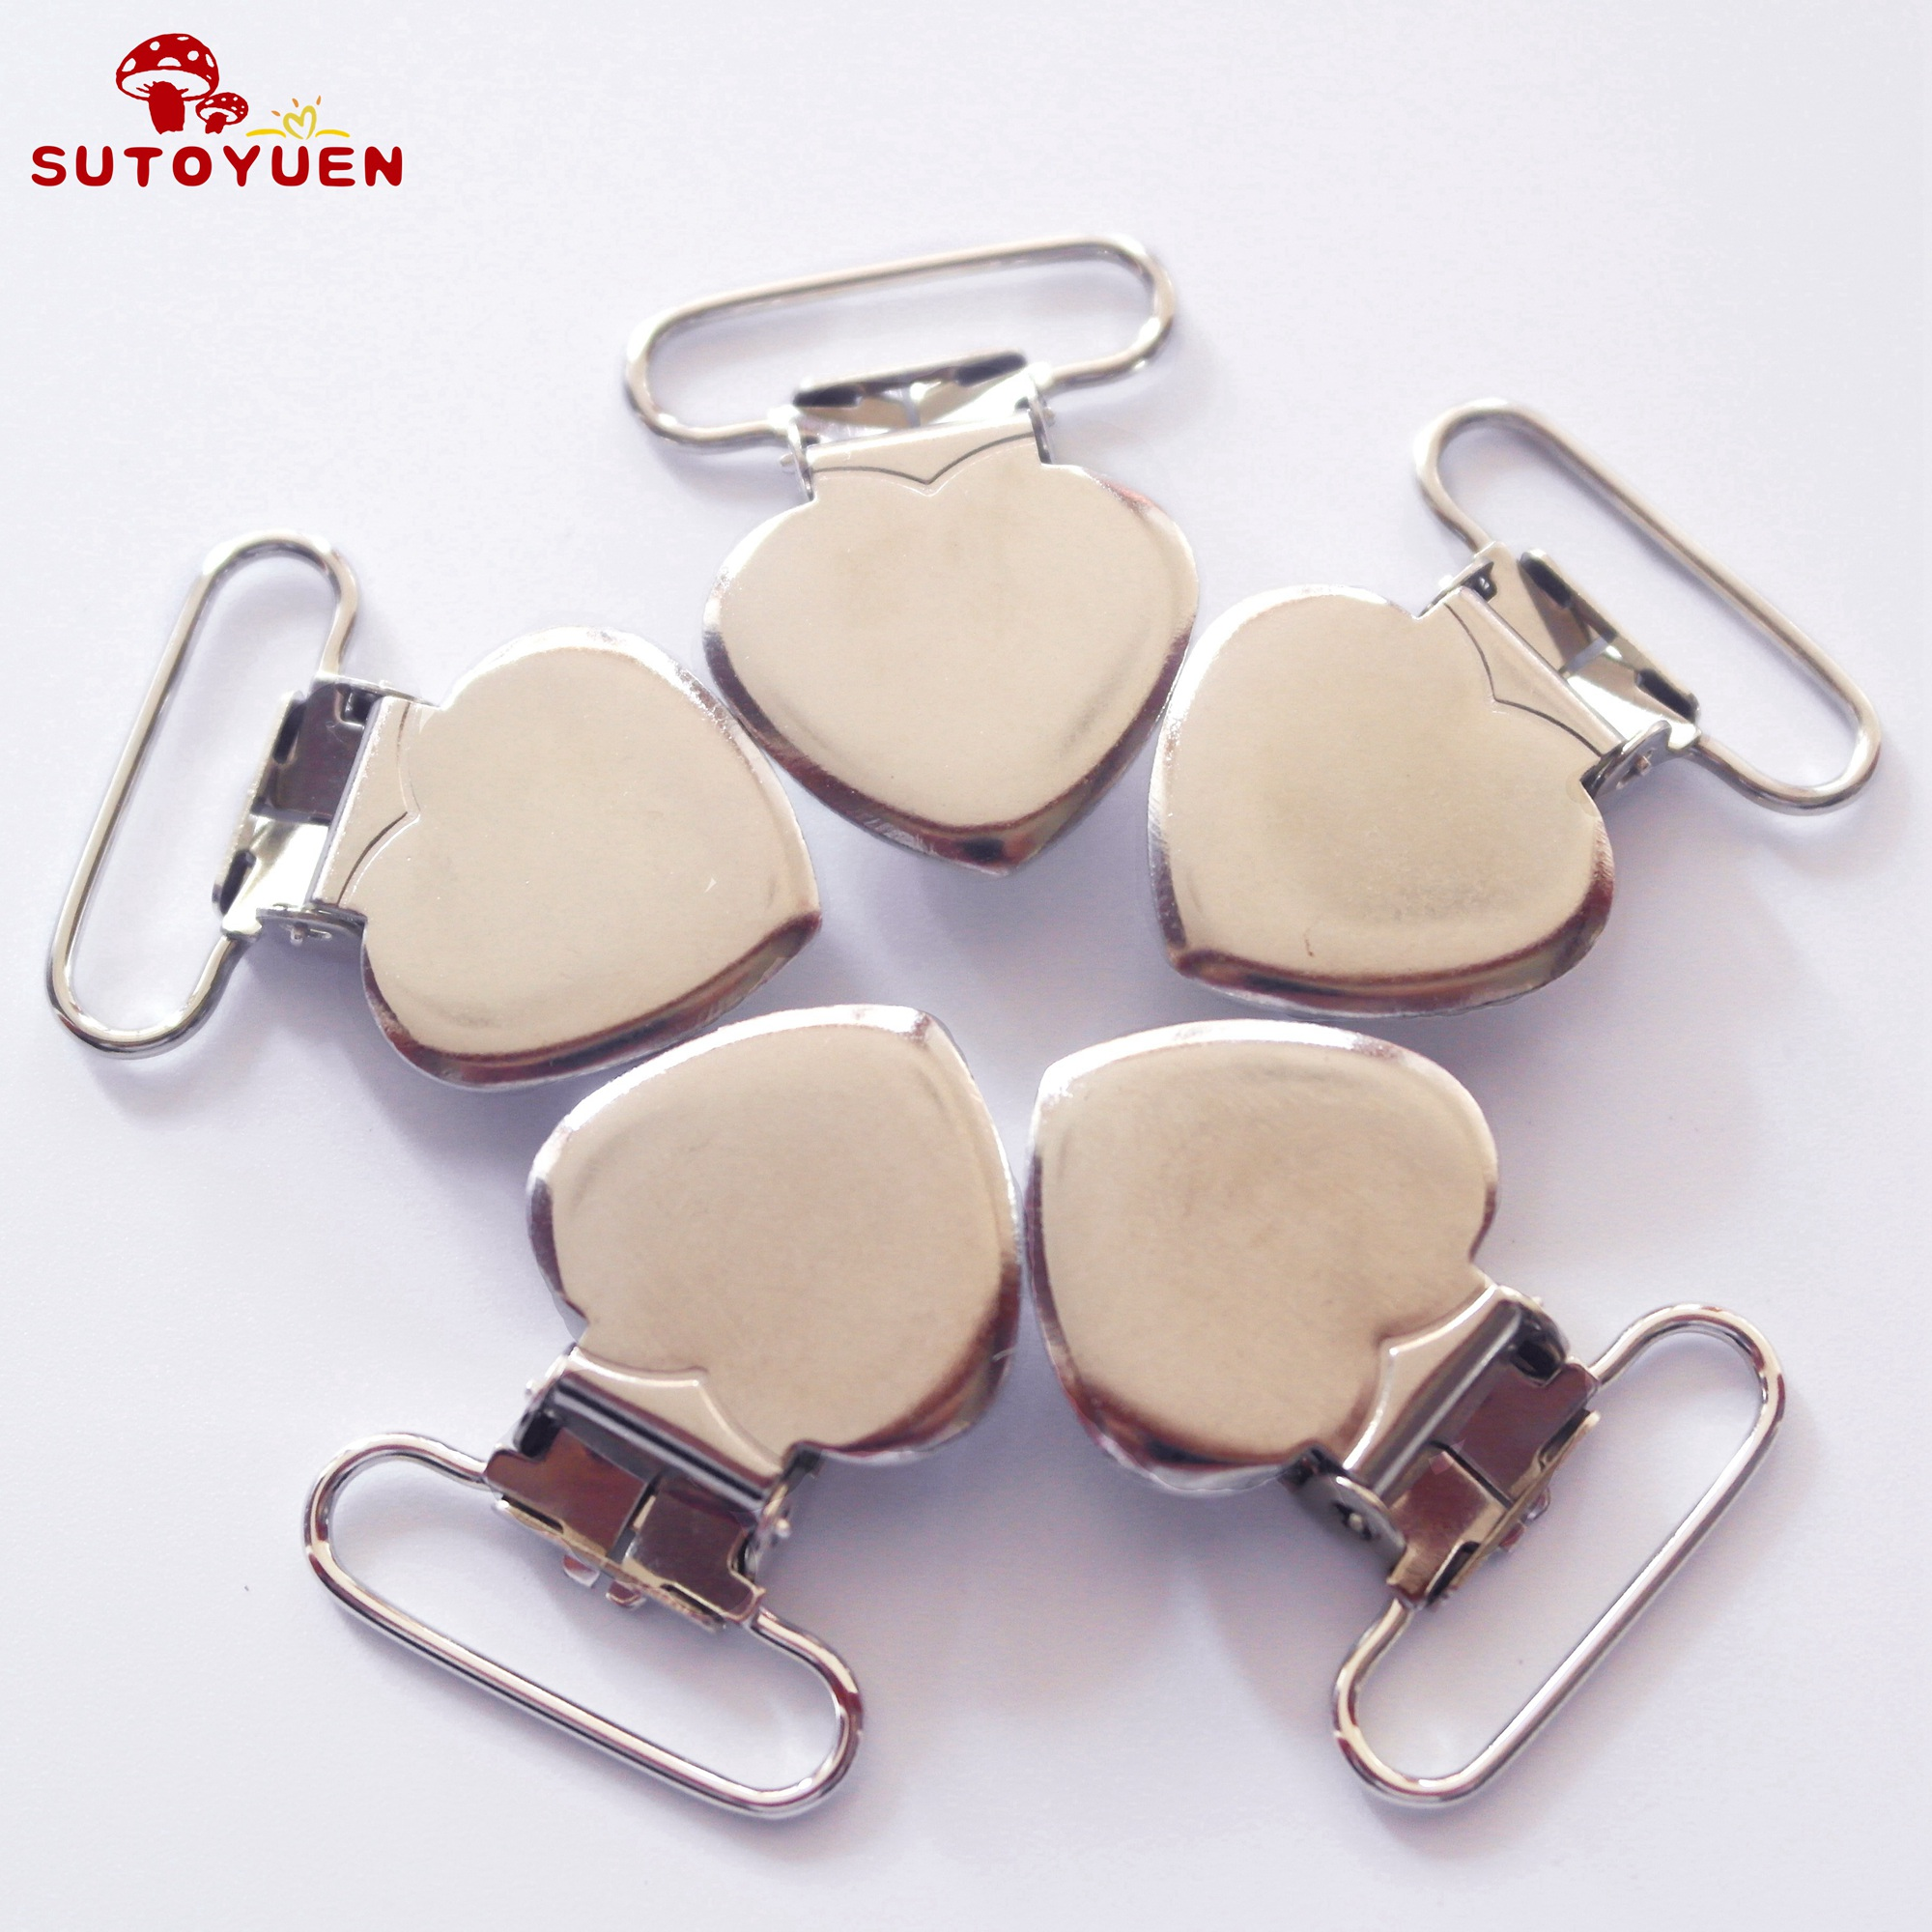 Free Shipping 100 pcs 1'' 25mm Silver Colored Heart Shaped Baby Pacifier Clips MAN  Dummy Clip Suspender Clip Rack Plating-in Pacifier from Mother & Kids    3